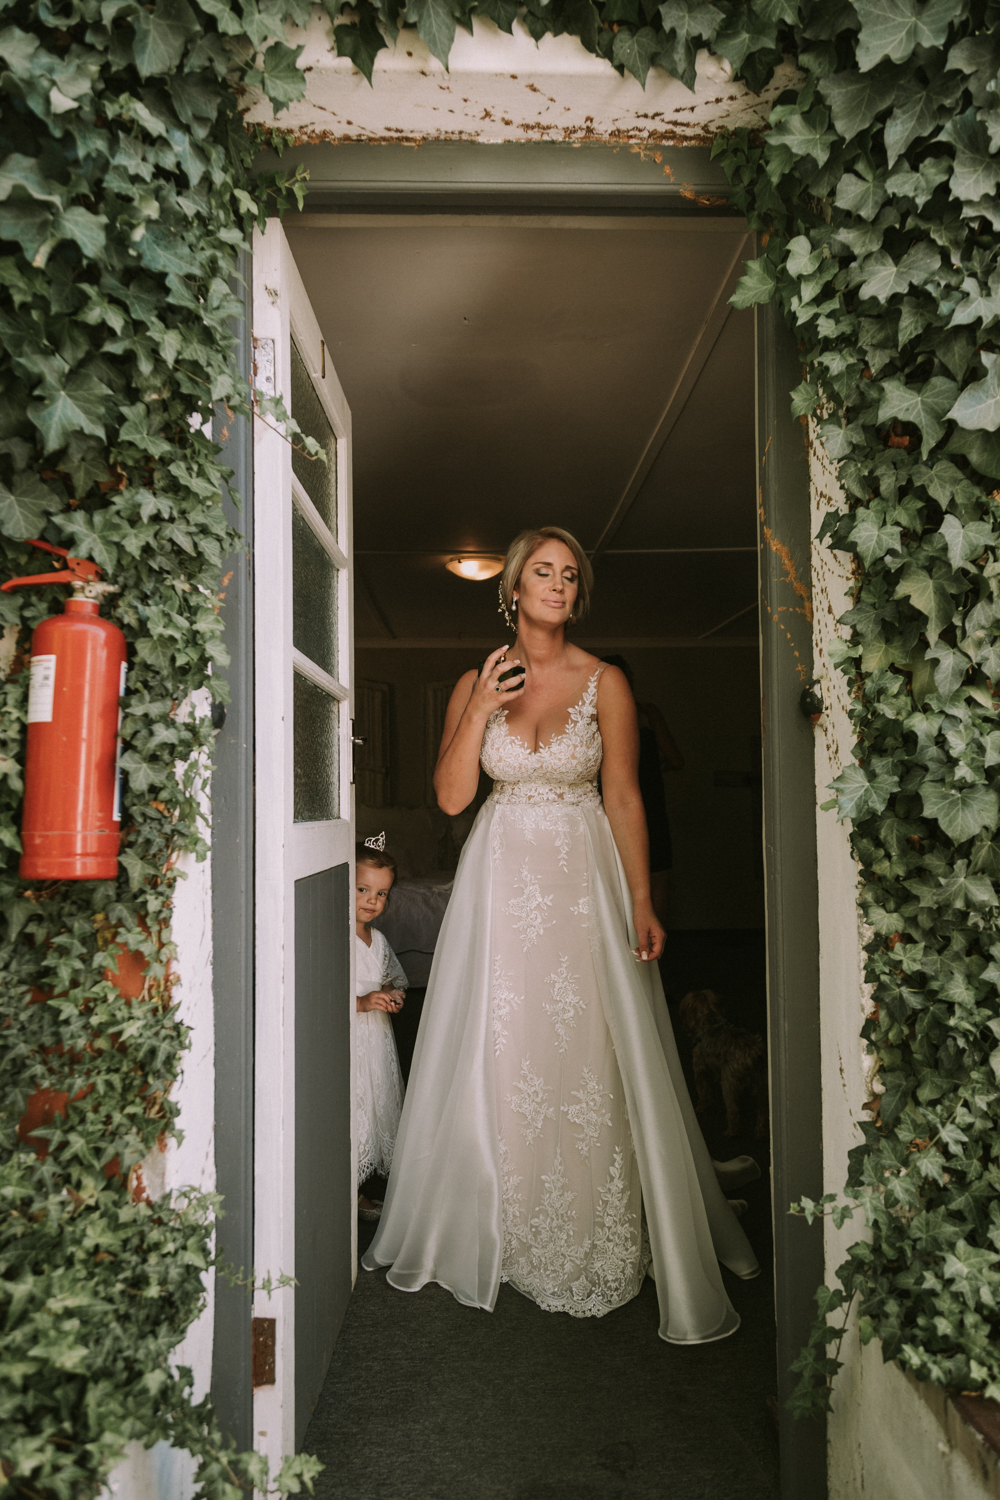 Elegant Country Wedding Cape Town - Bianca Asher Photography-27.jpg